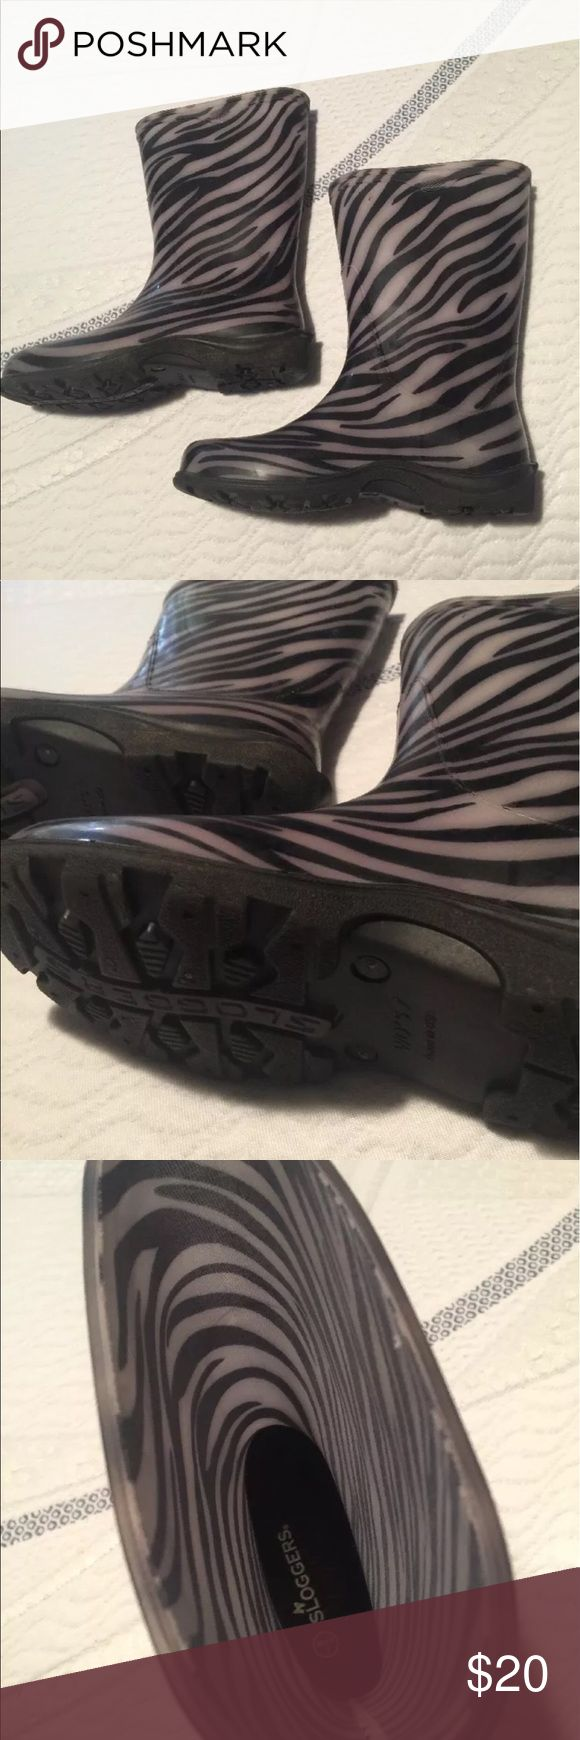 Zebra Print Sloggers Rubber Boots Zebra Print Sloggers brand rubber rain/garden boots size 7. Only worn a few times so they are in great condition! Super cute and comfortable! sloggers Shoes Winter & Rain Boots